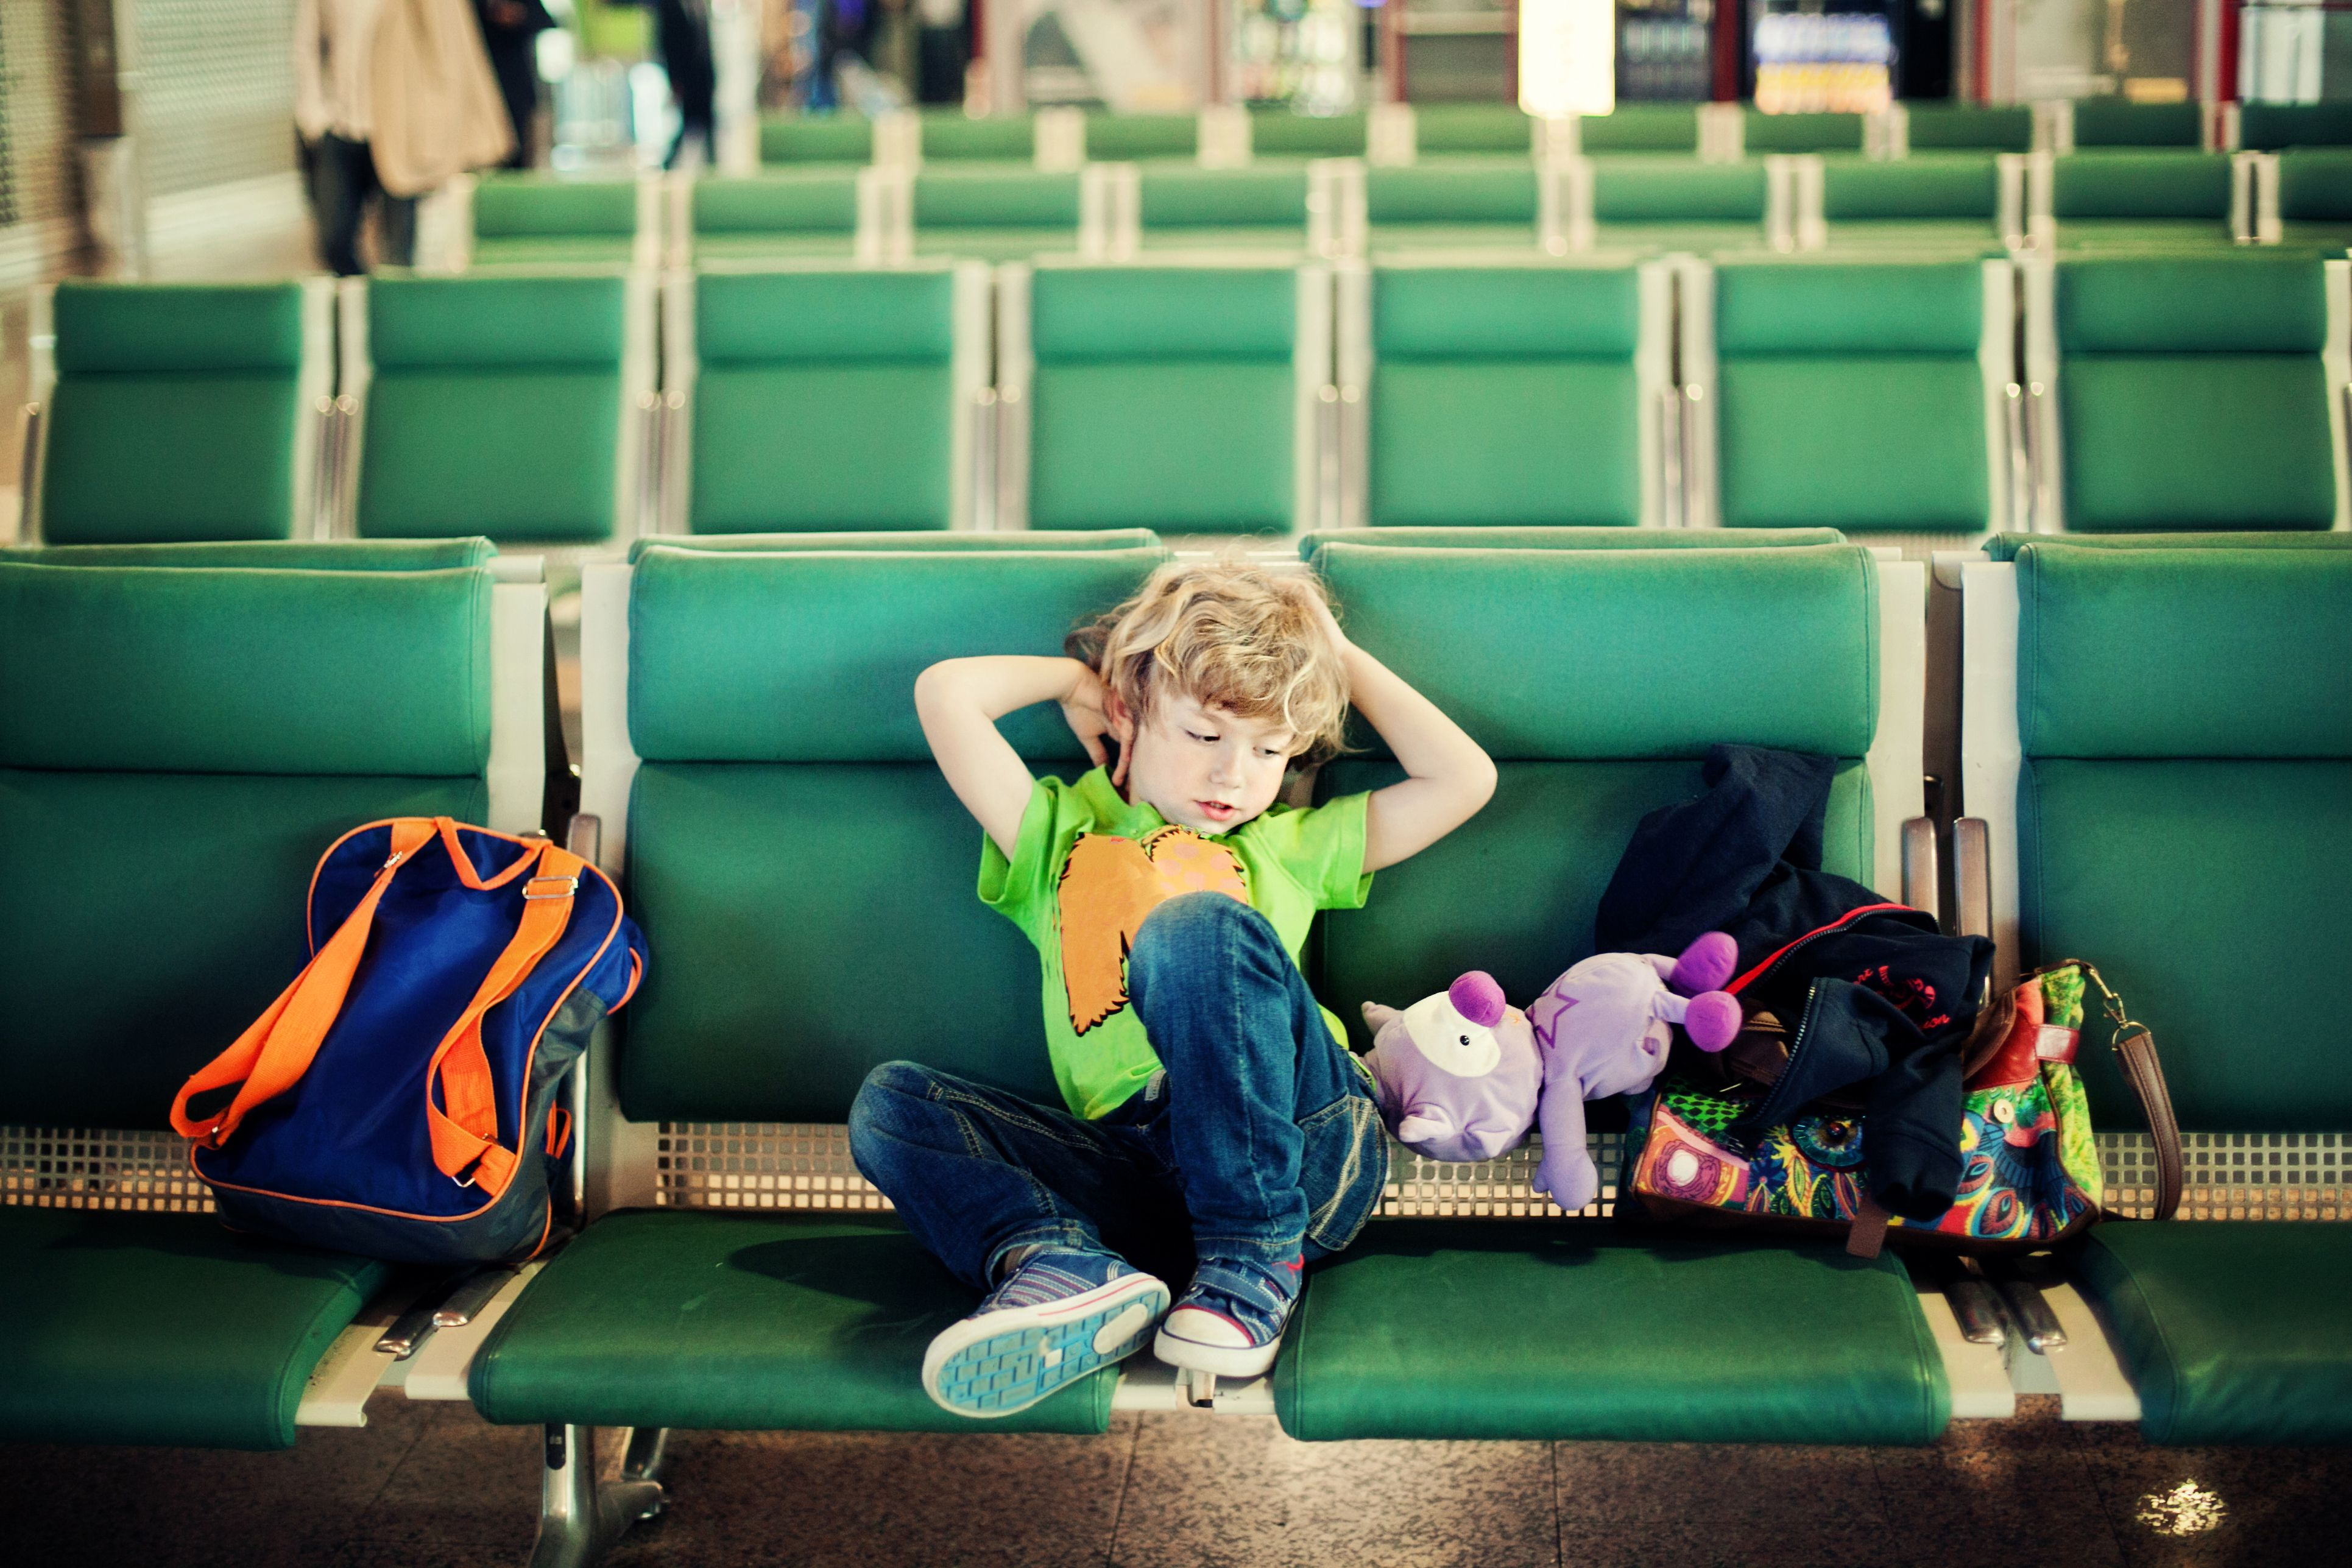 Child lounging on airport chairs